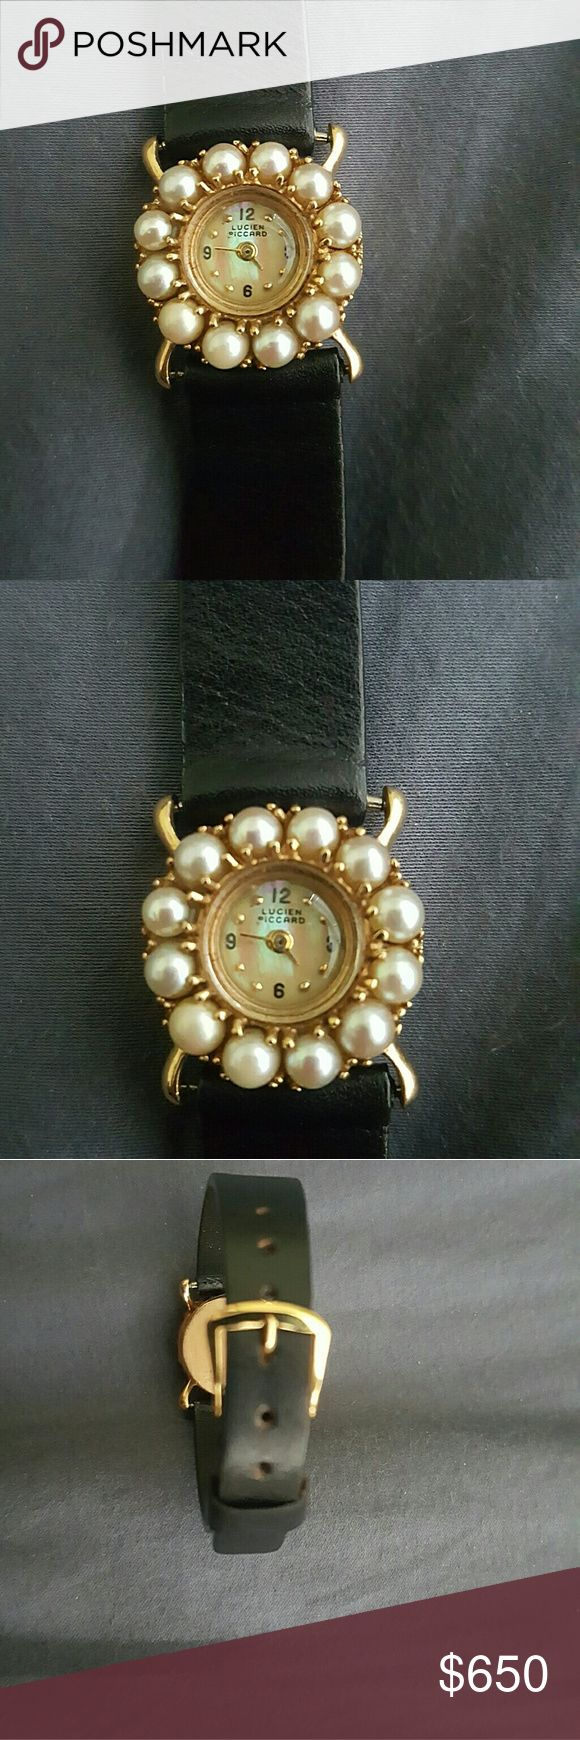 14kt Gold and Pearl Lucien Piccard Lady's Wristwat Vintage Lucien Piccard watch in excellent physical condition.   Currently not working. Lucien Piccard Jewelry